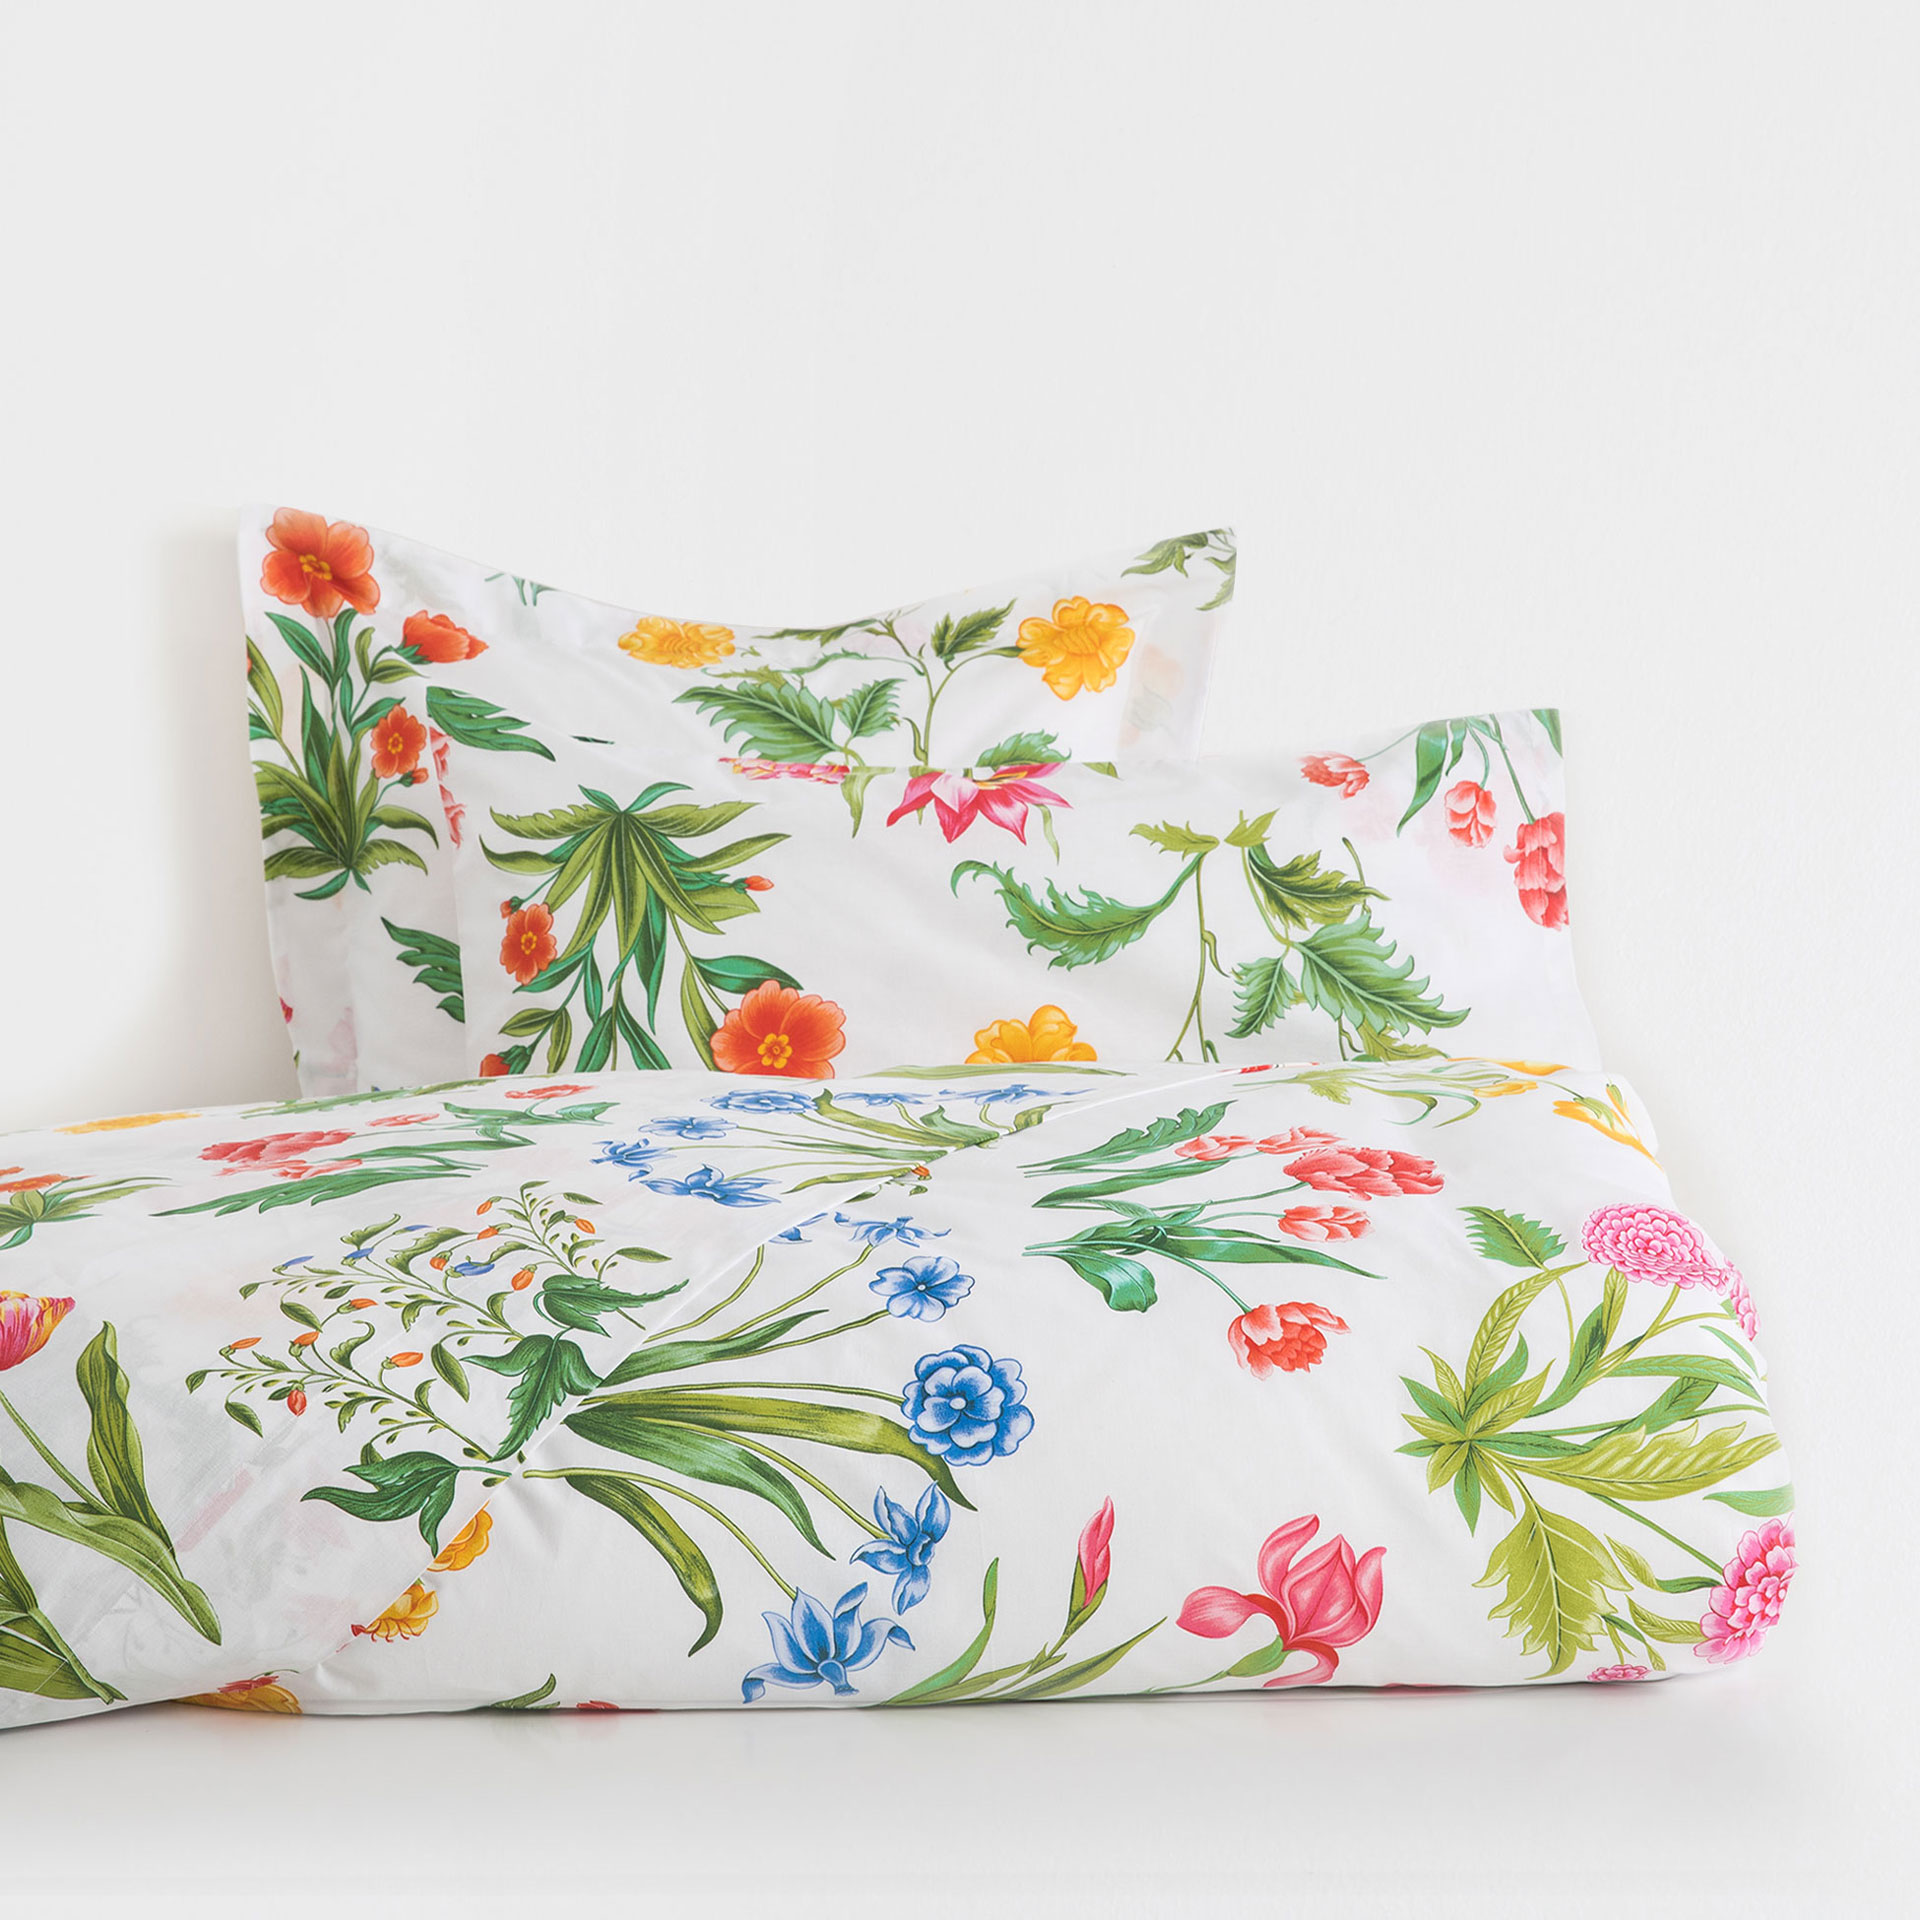 multicoloured floral duvet cover   zara home united kingdom -  image  of the product multicoloured floral duvet cover